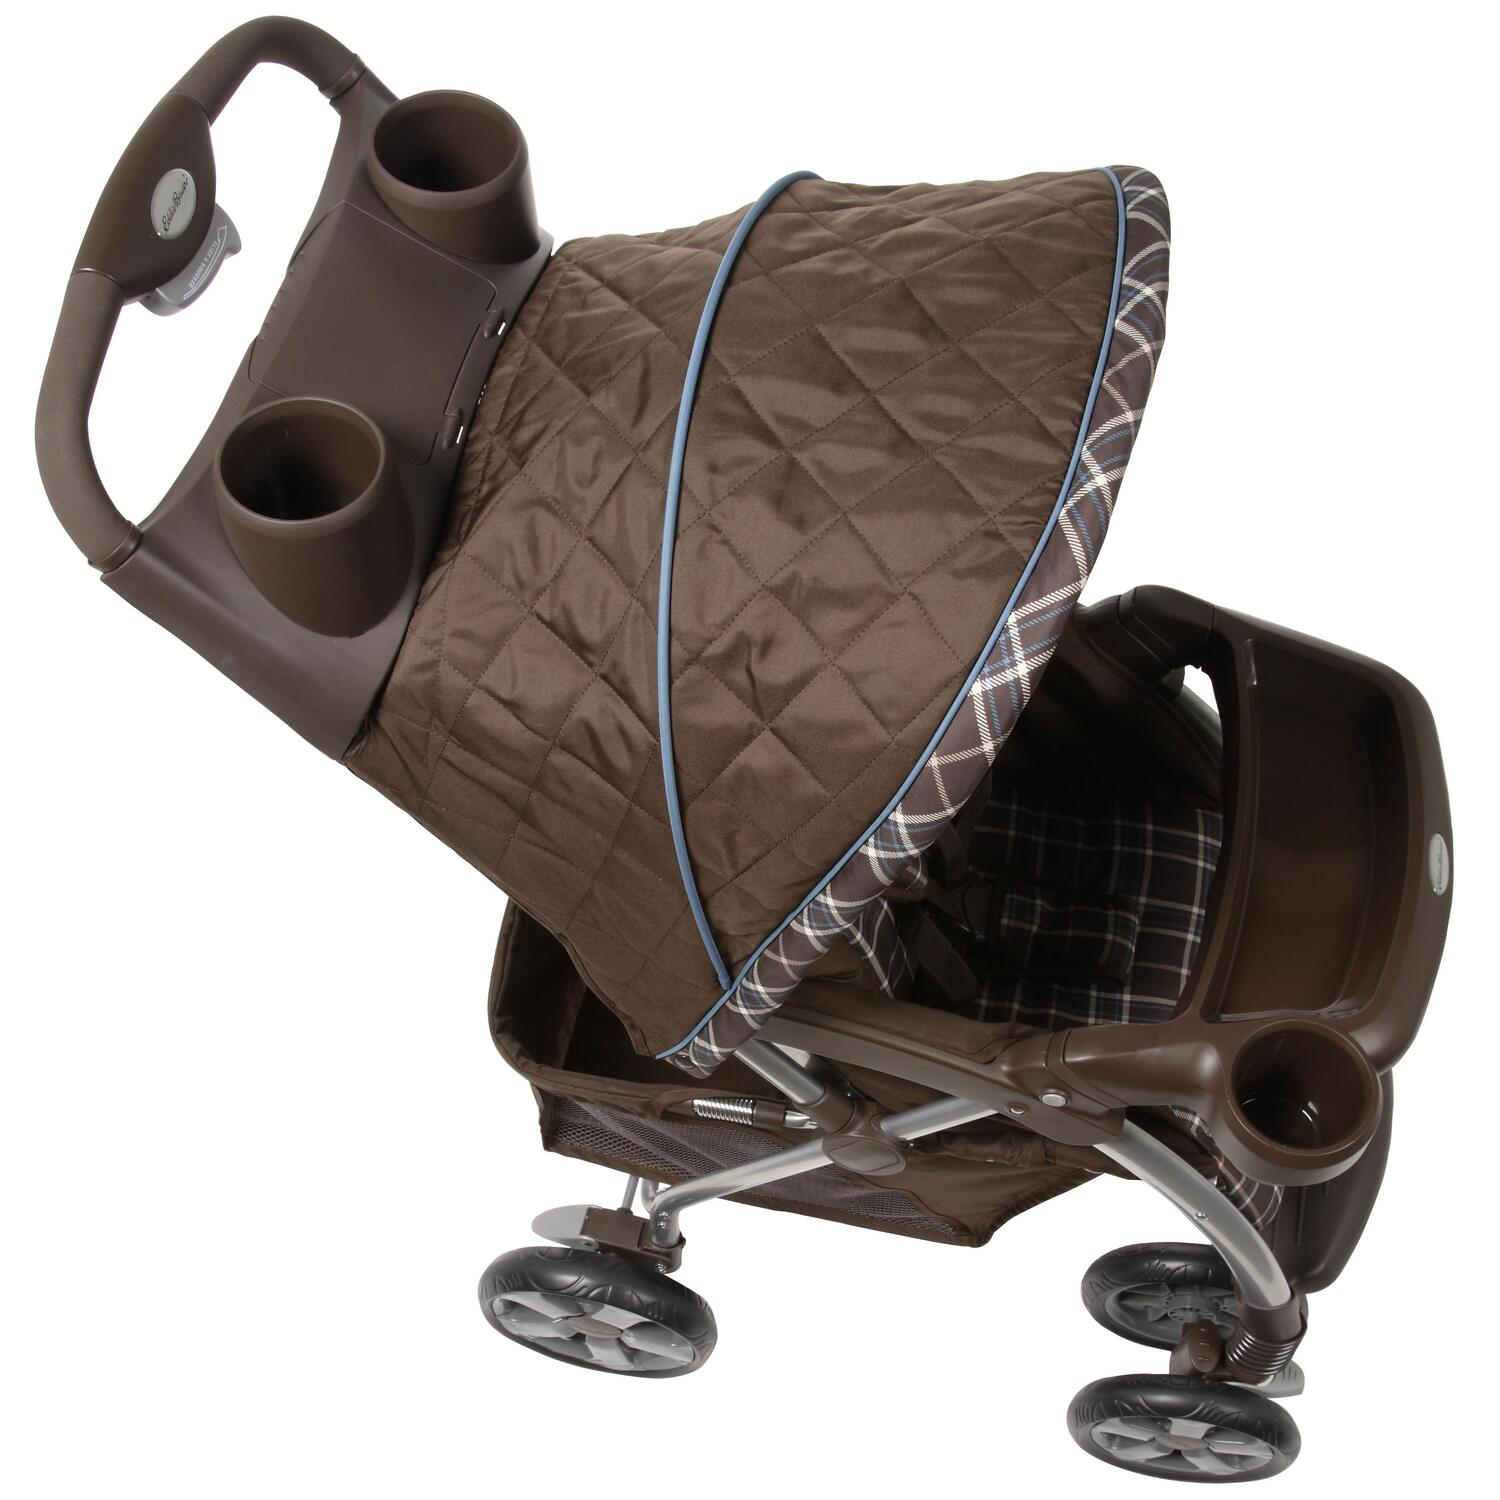 10 Best Travel System Strollers For Newborn To Toddler